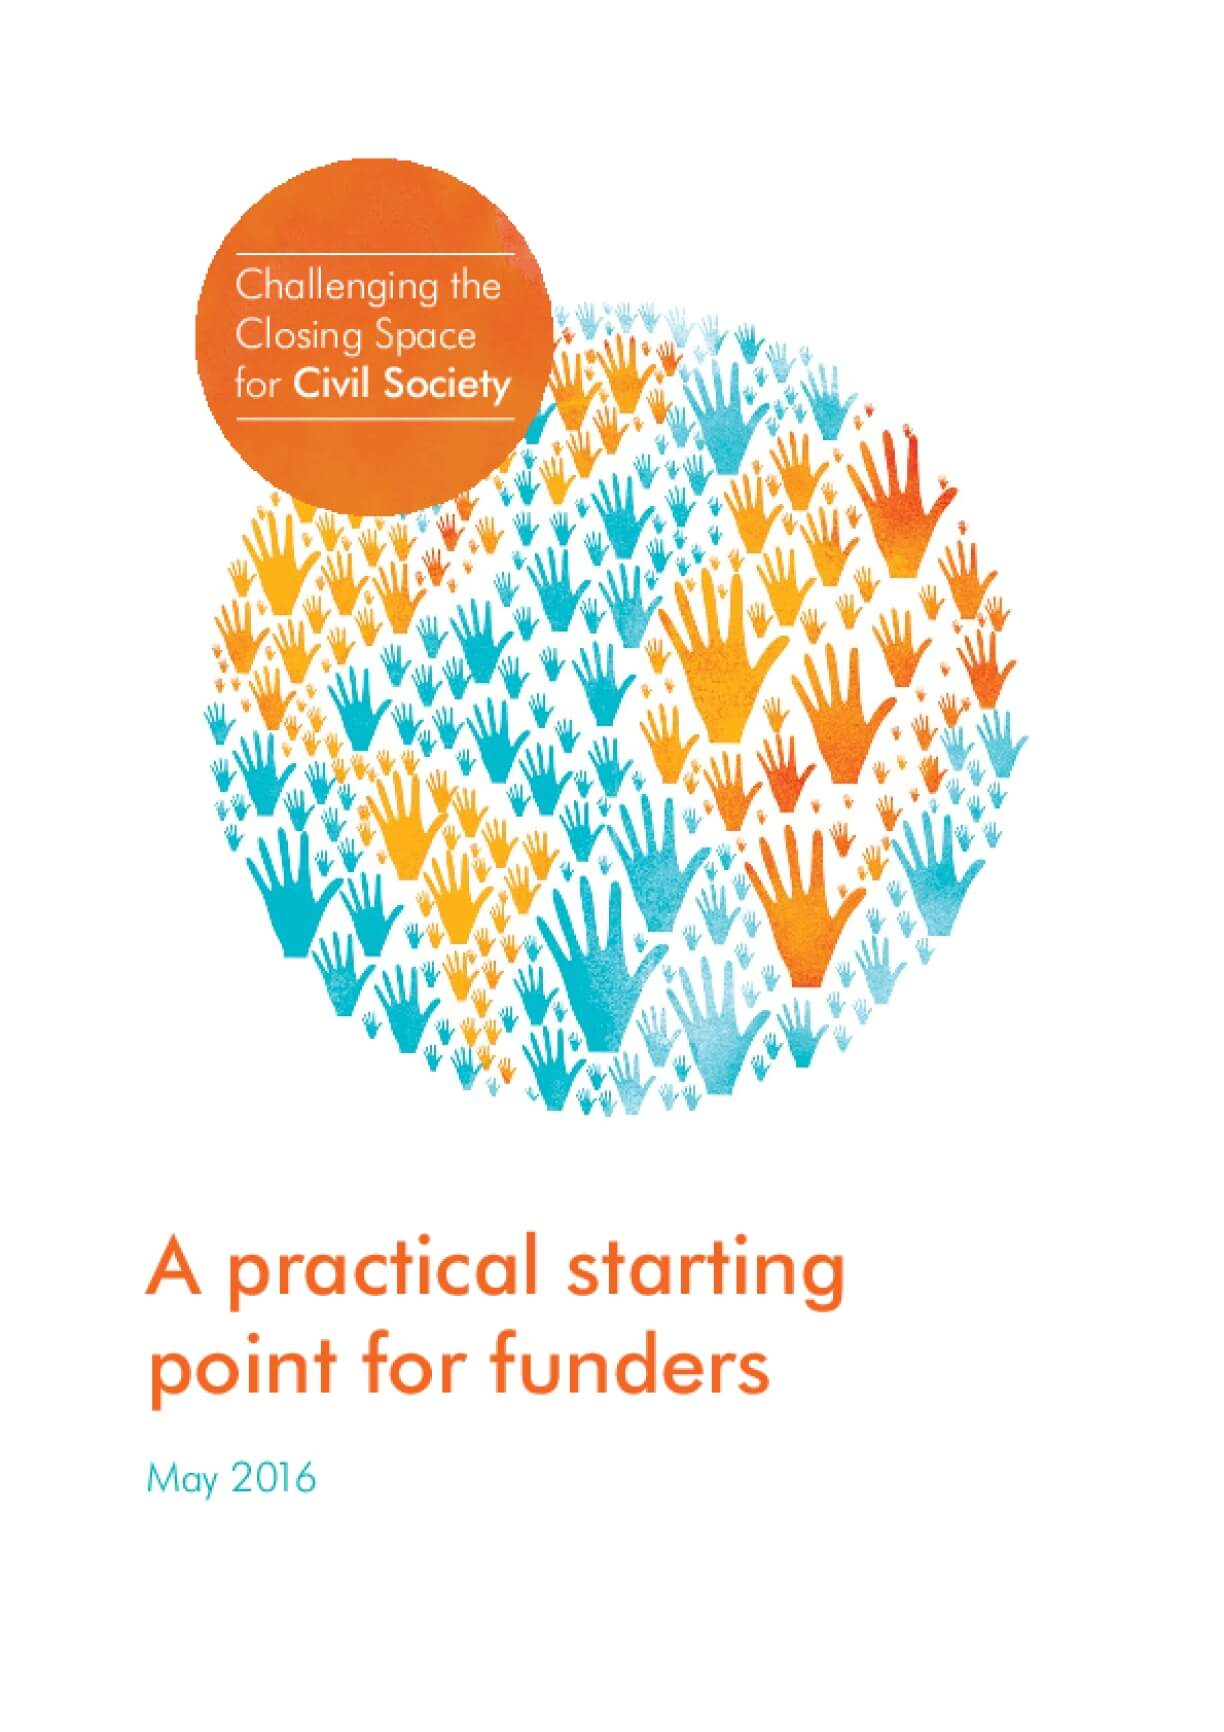 Challenging the Closing Space for Civil Society: A practical starting point for funders